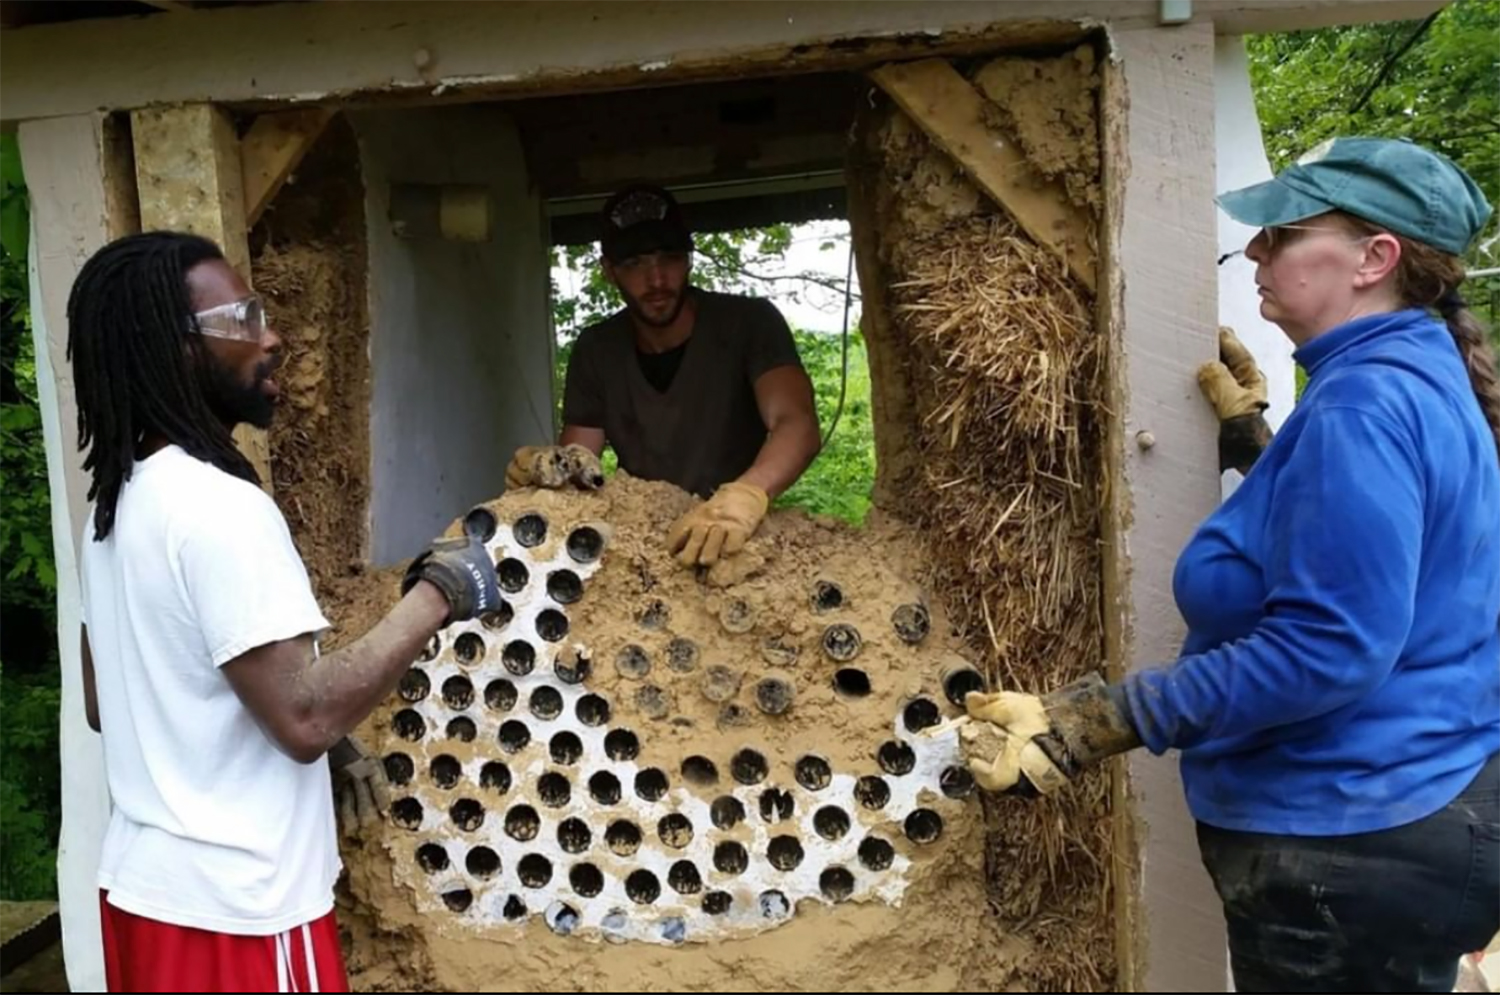 Three men working on the earthship together